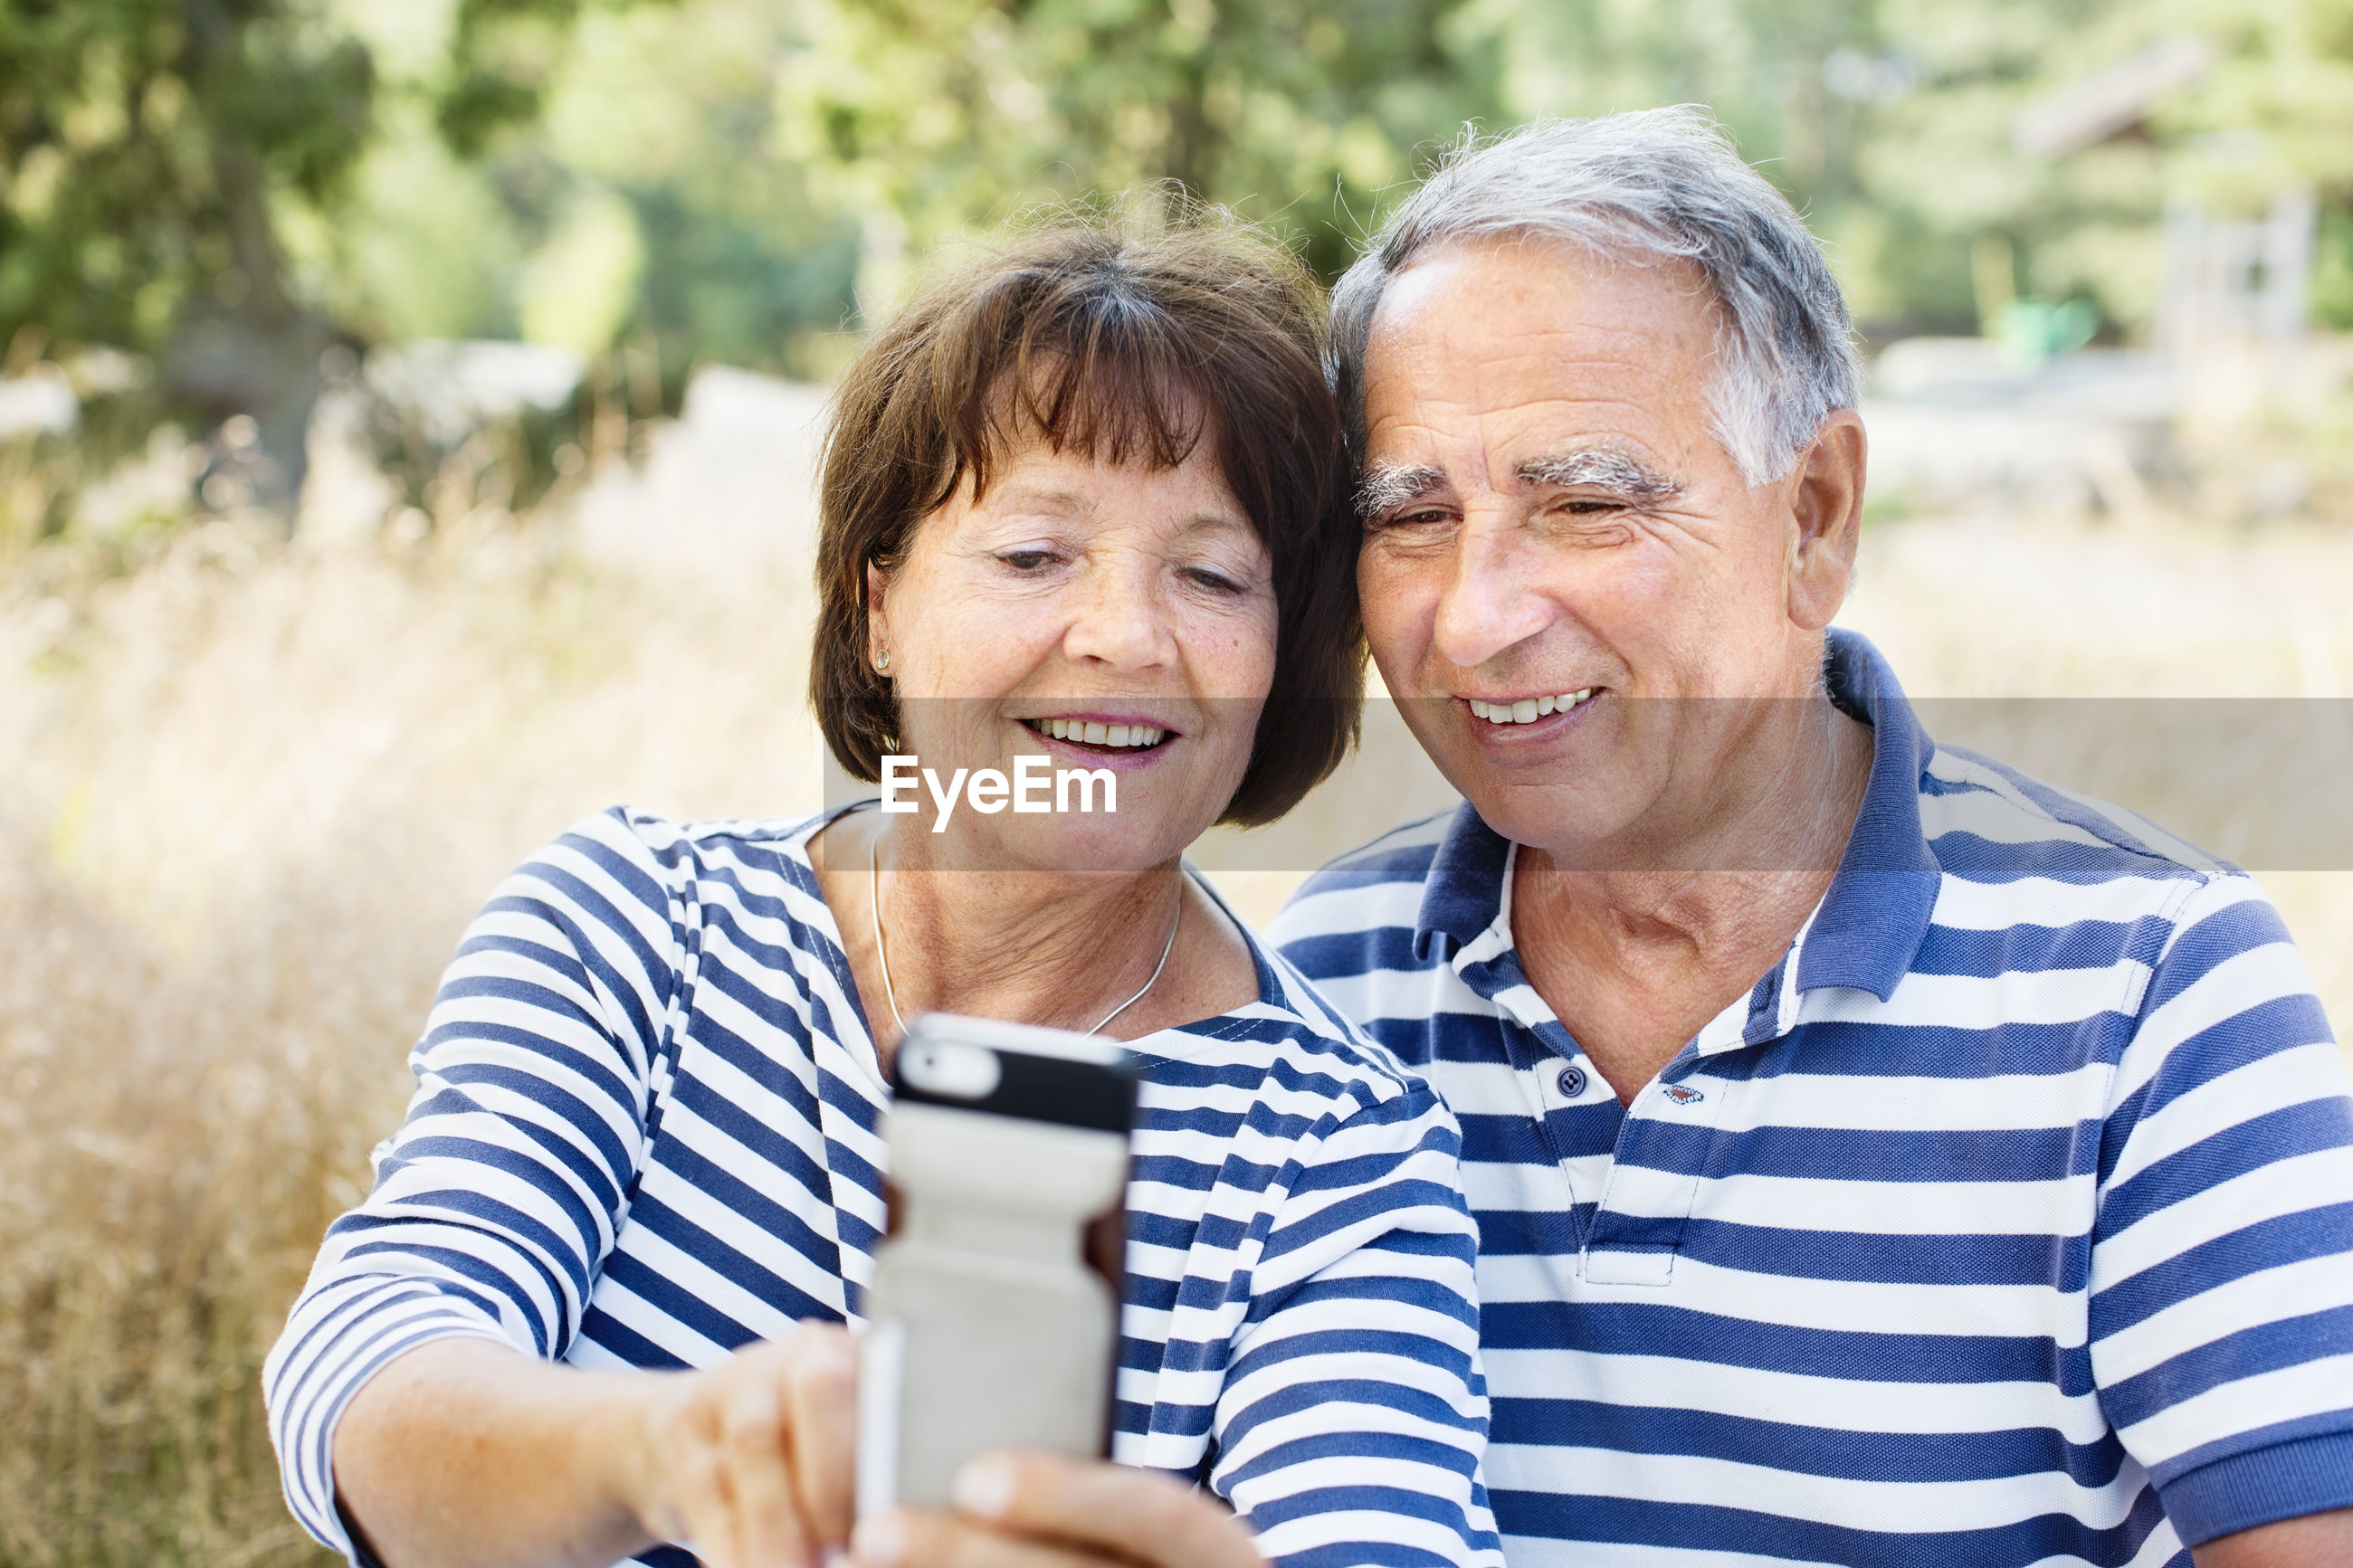 PORTRAIT OF MAN AND WOMAN USING PHONE OUTDOORS